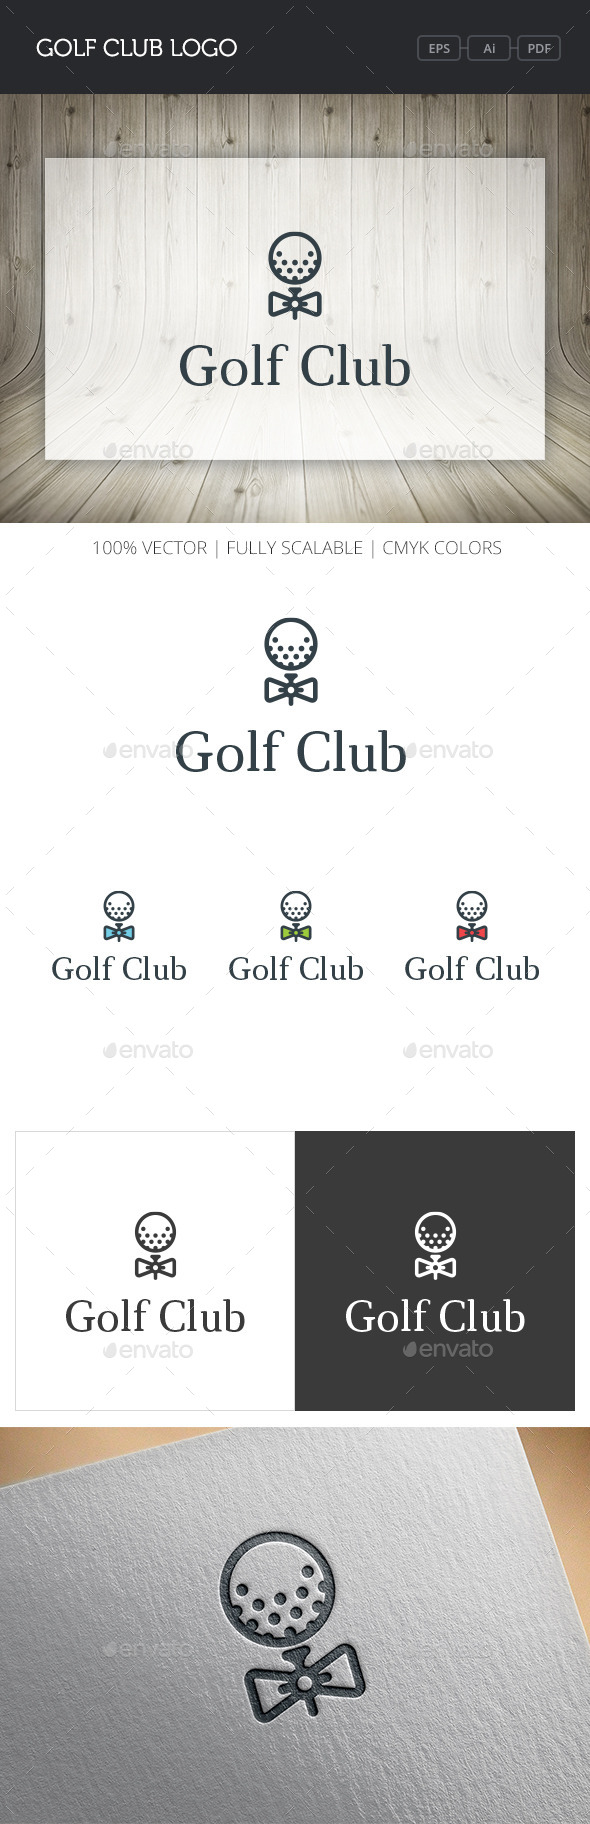 GraphicRiver Golf Club Logo 10841229